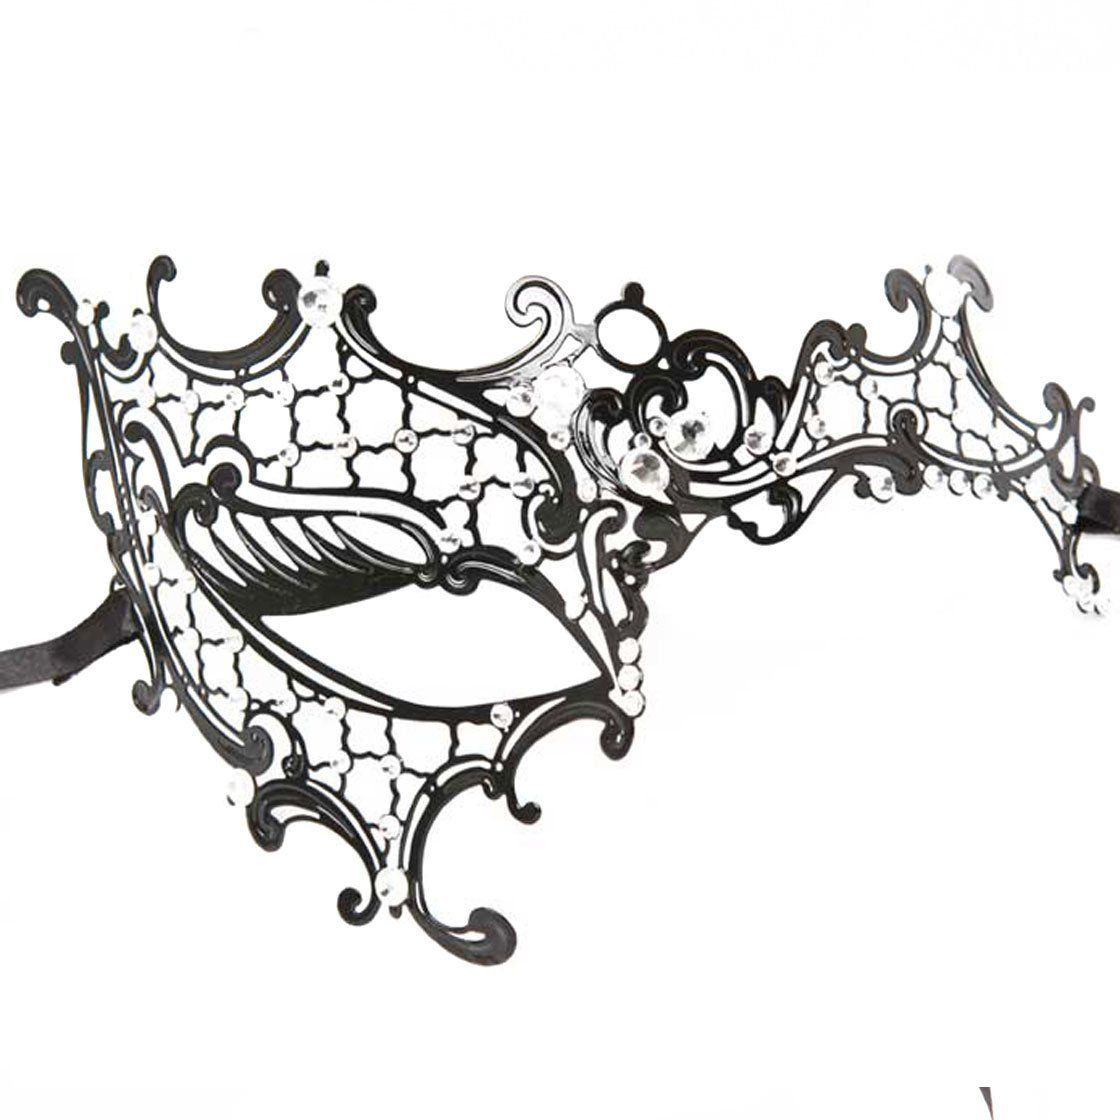 Masquerade mask masquerade mask vine mask metal lace masquerade - Black Laser Cut Metal Venetian Masquerade Mask One Size Fit All Handmade Artwork And Natural Diamond